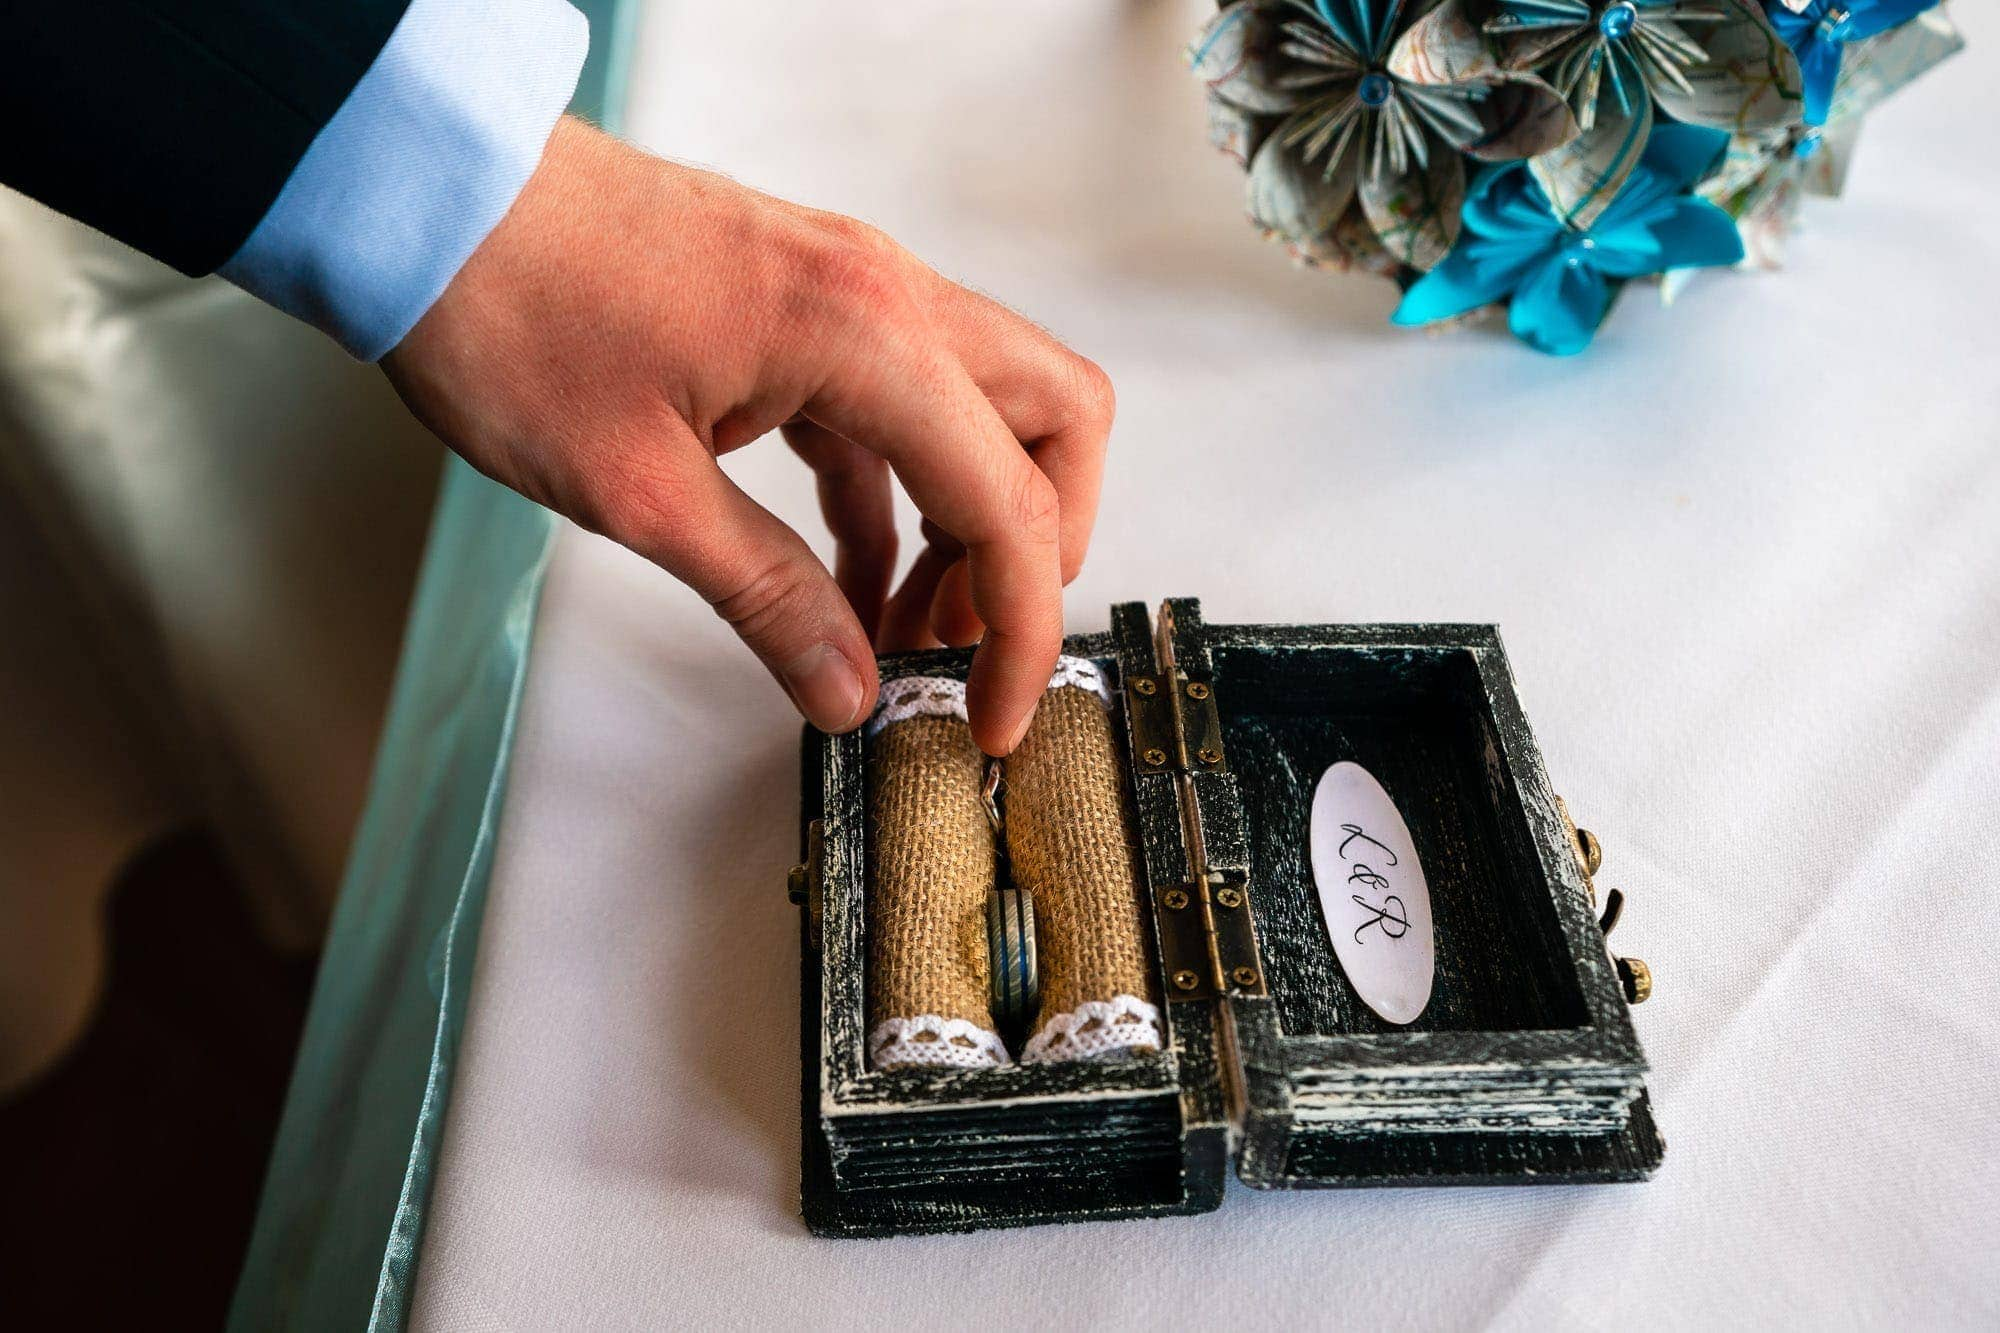 Groom taking ring out of ring box during their wedding ceremony.